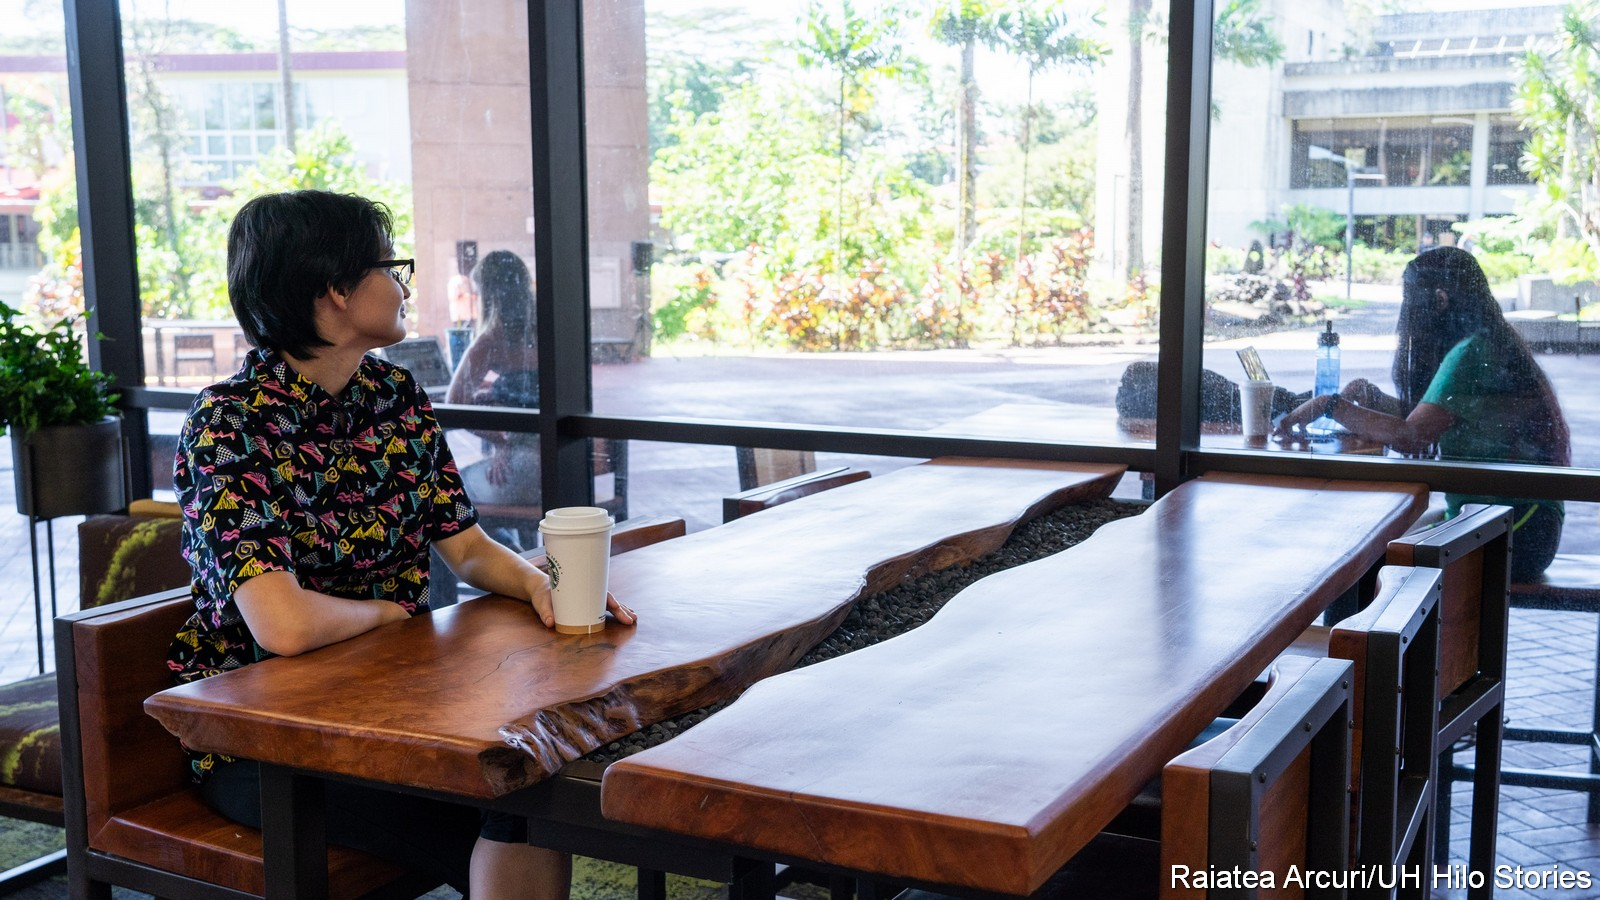 Student sits at table made of wood shaped like flowing wateer, looking out window to lanai and gardens.